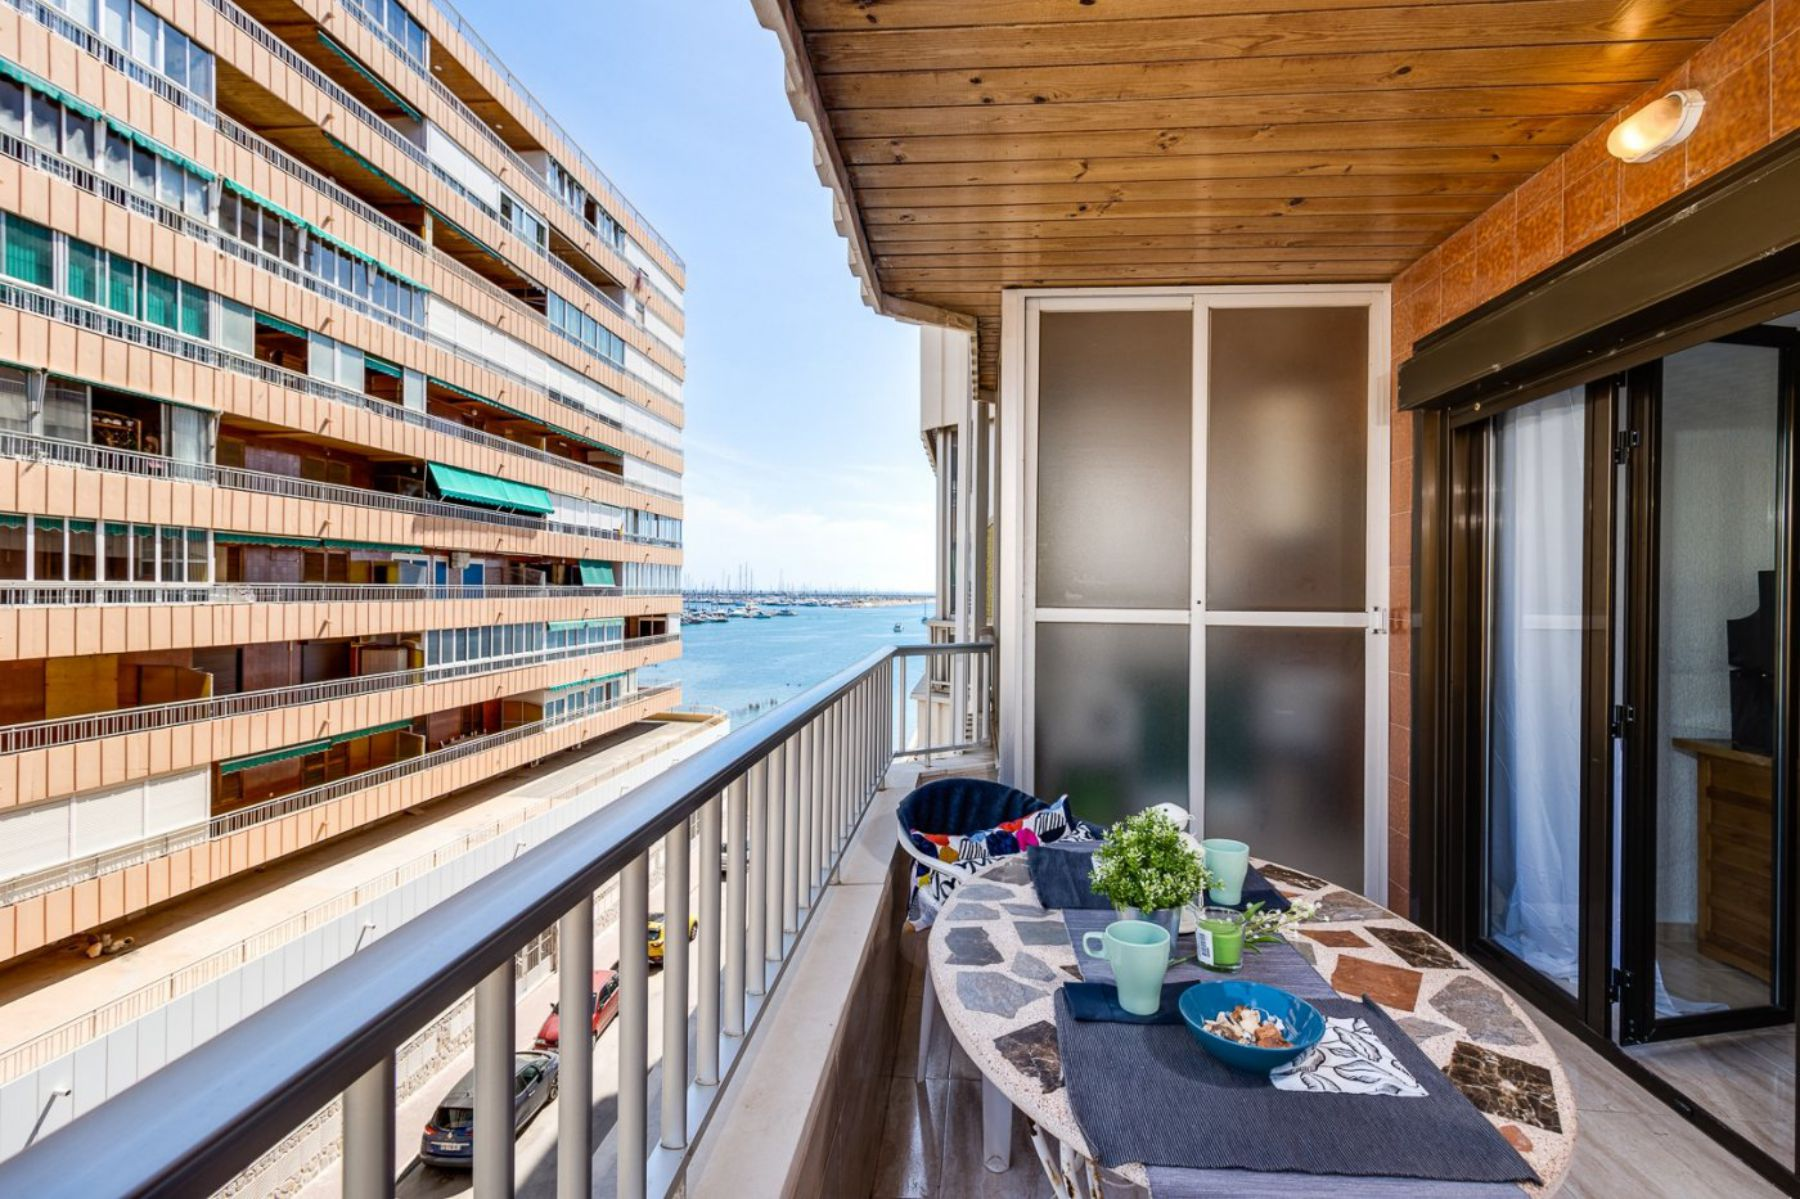 3 Bedrooms Apartment For Sale on The beachfront in Torrevieja